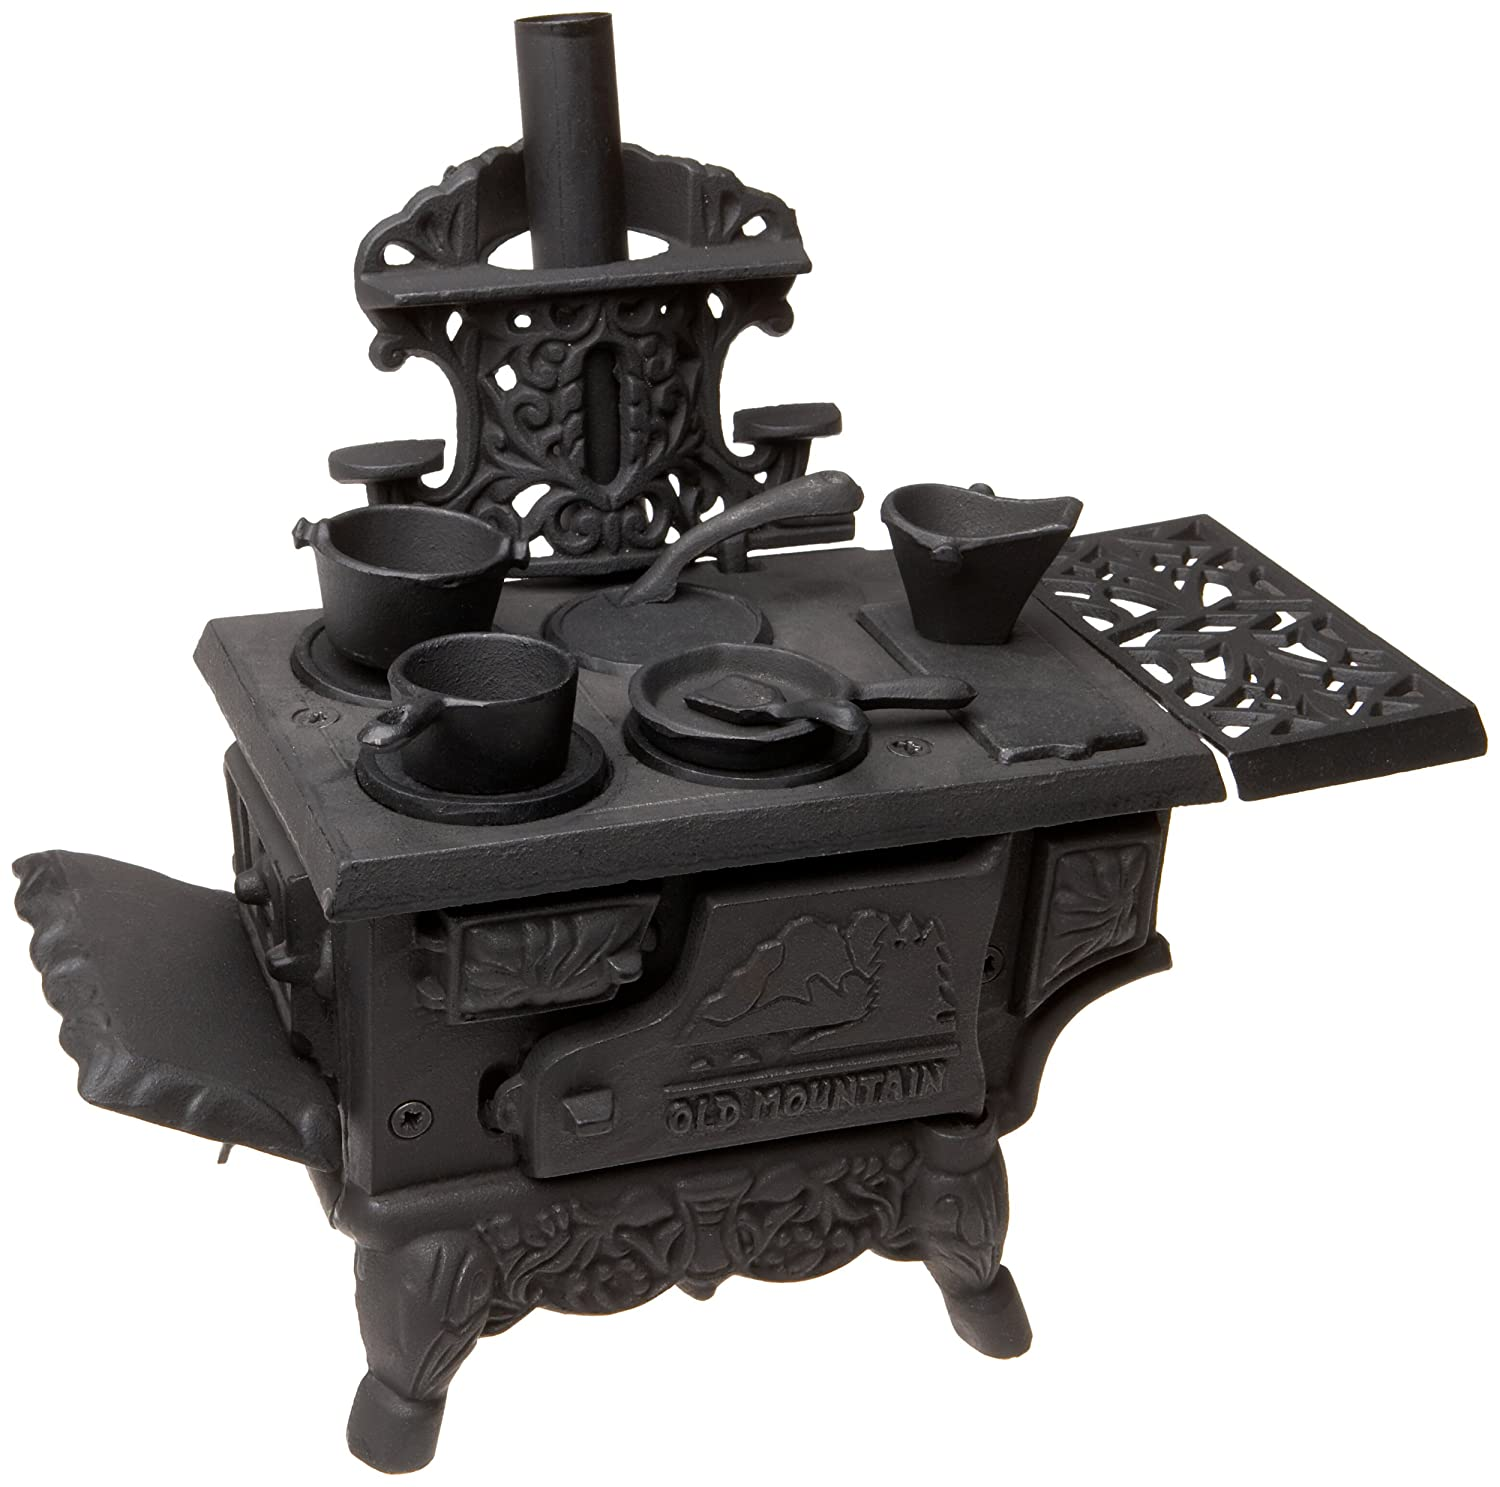 Amazon.com: Black Mini Wood Cook Stove Set - 12 Inches Long With  Accessories: Kitchen & Dining